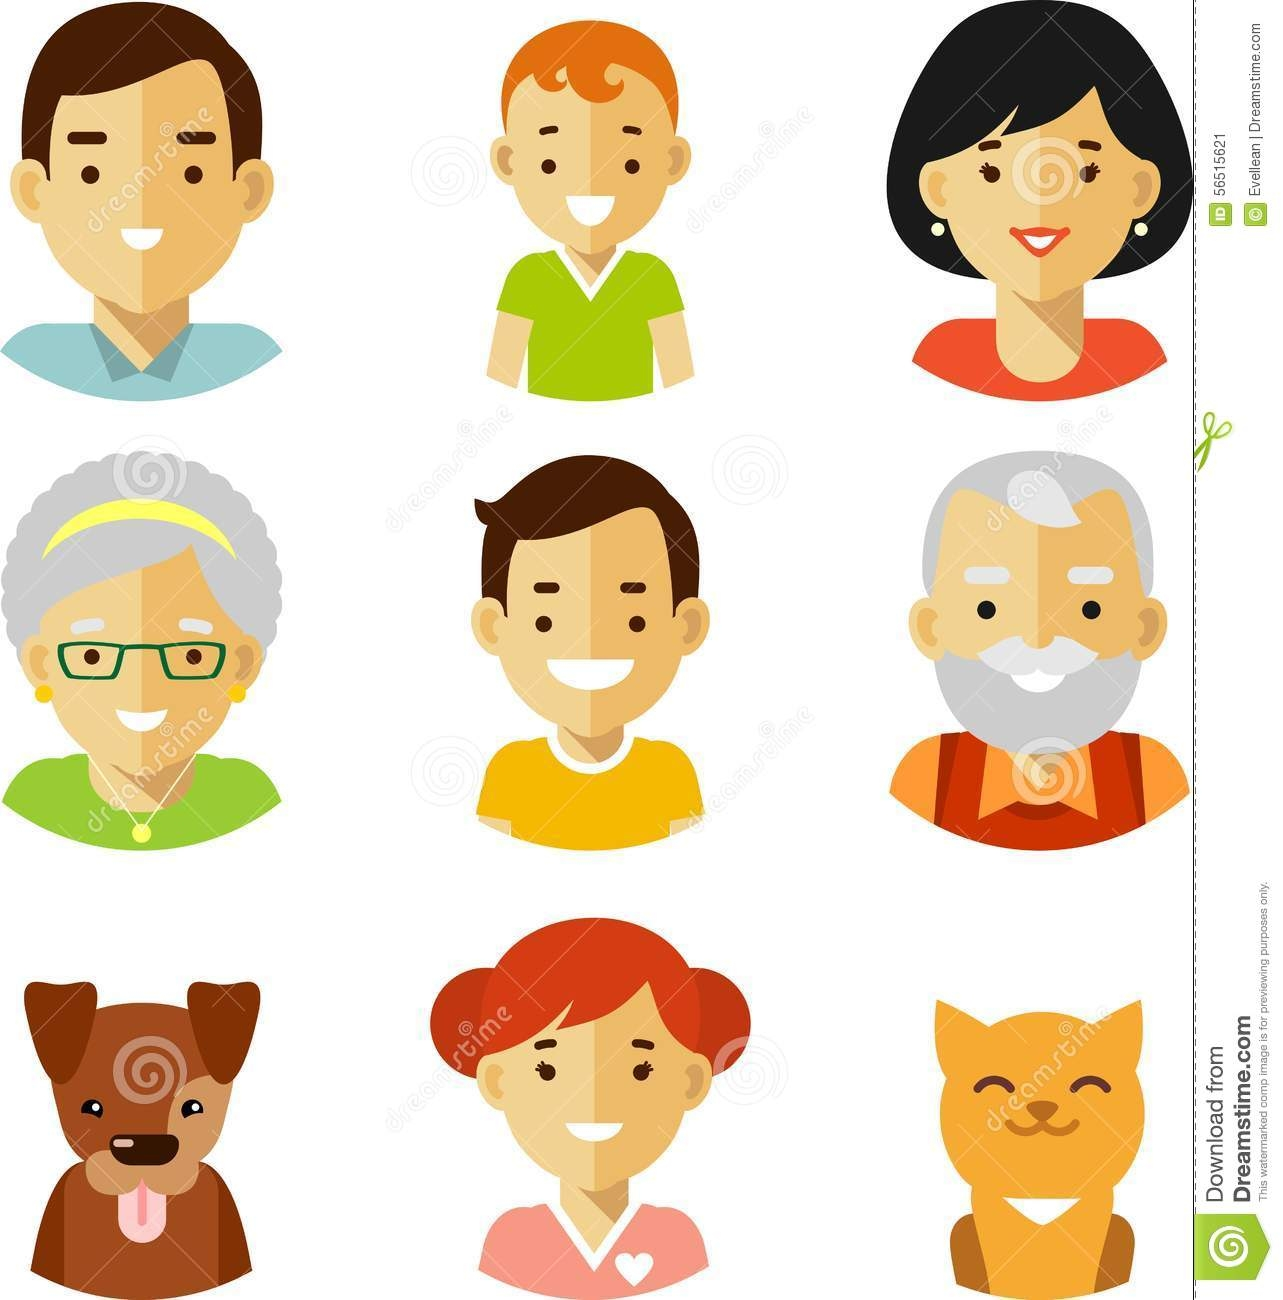 Pictures Of Family Members Clip Art.